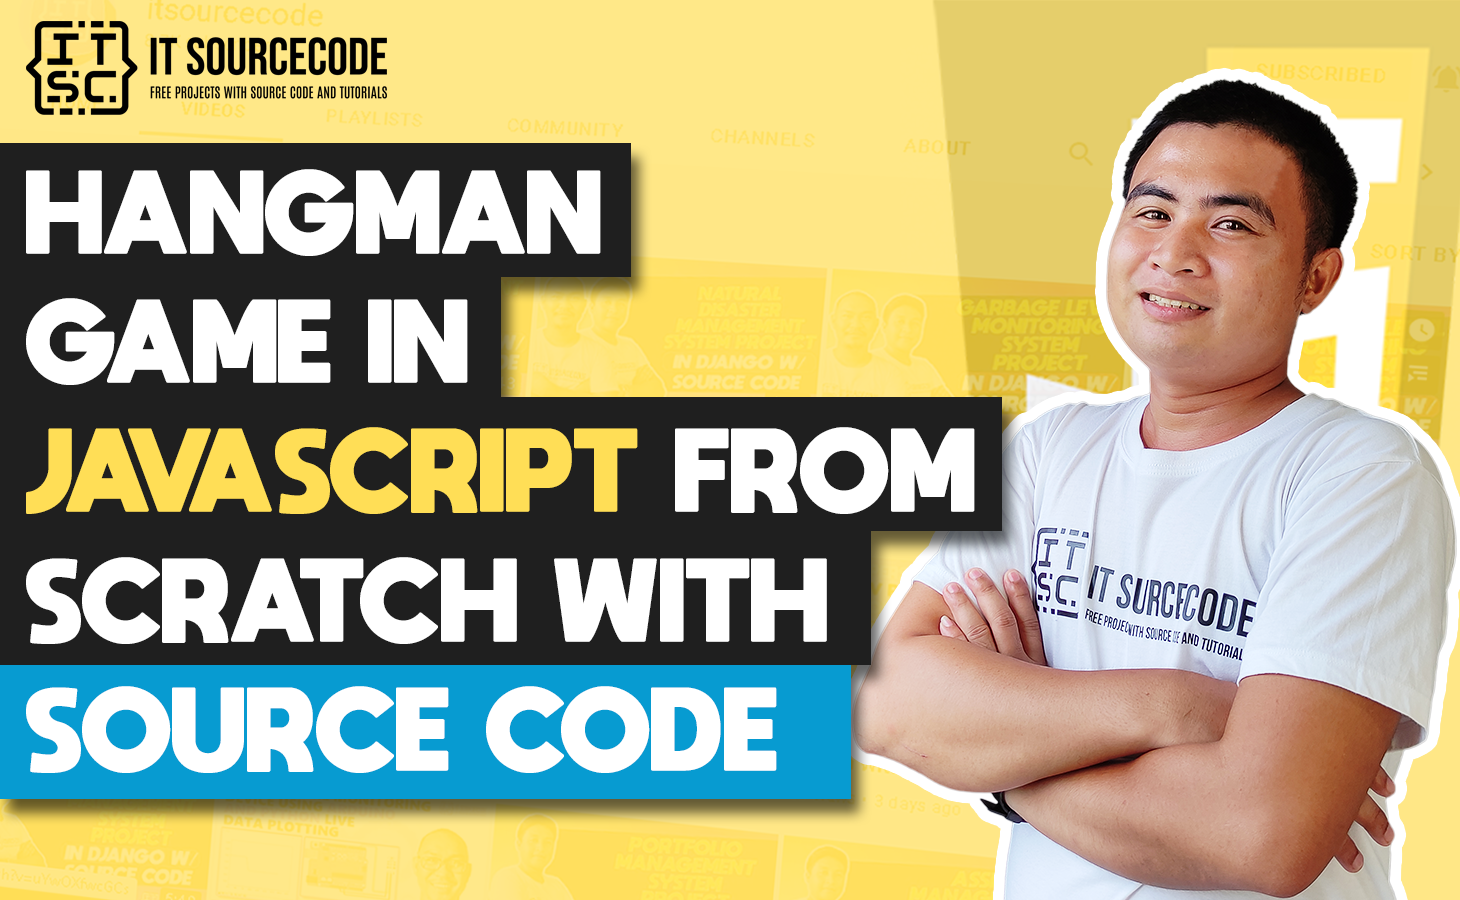 Hangman Game Javascript From Scratch With Source Code